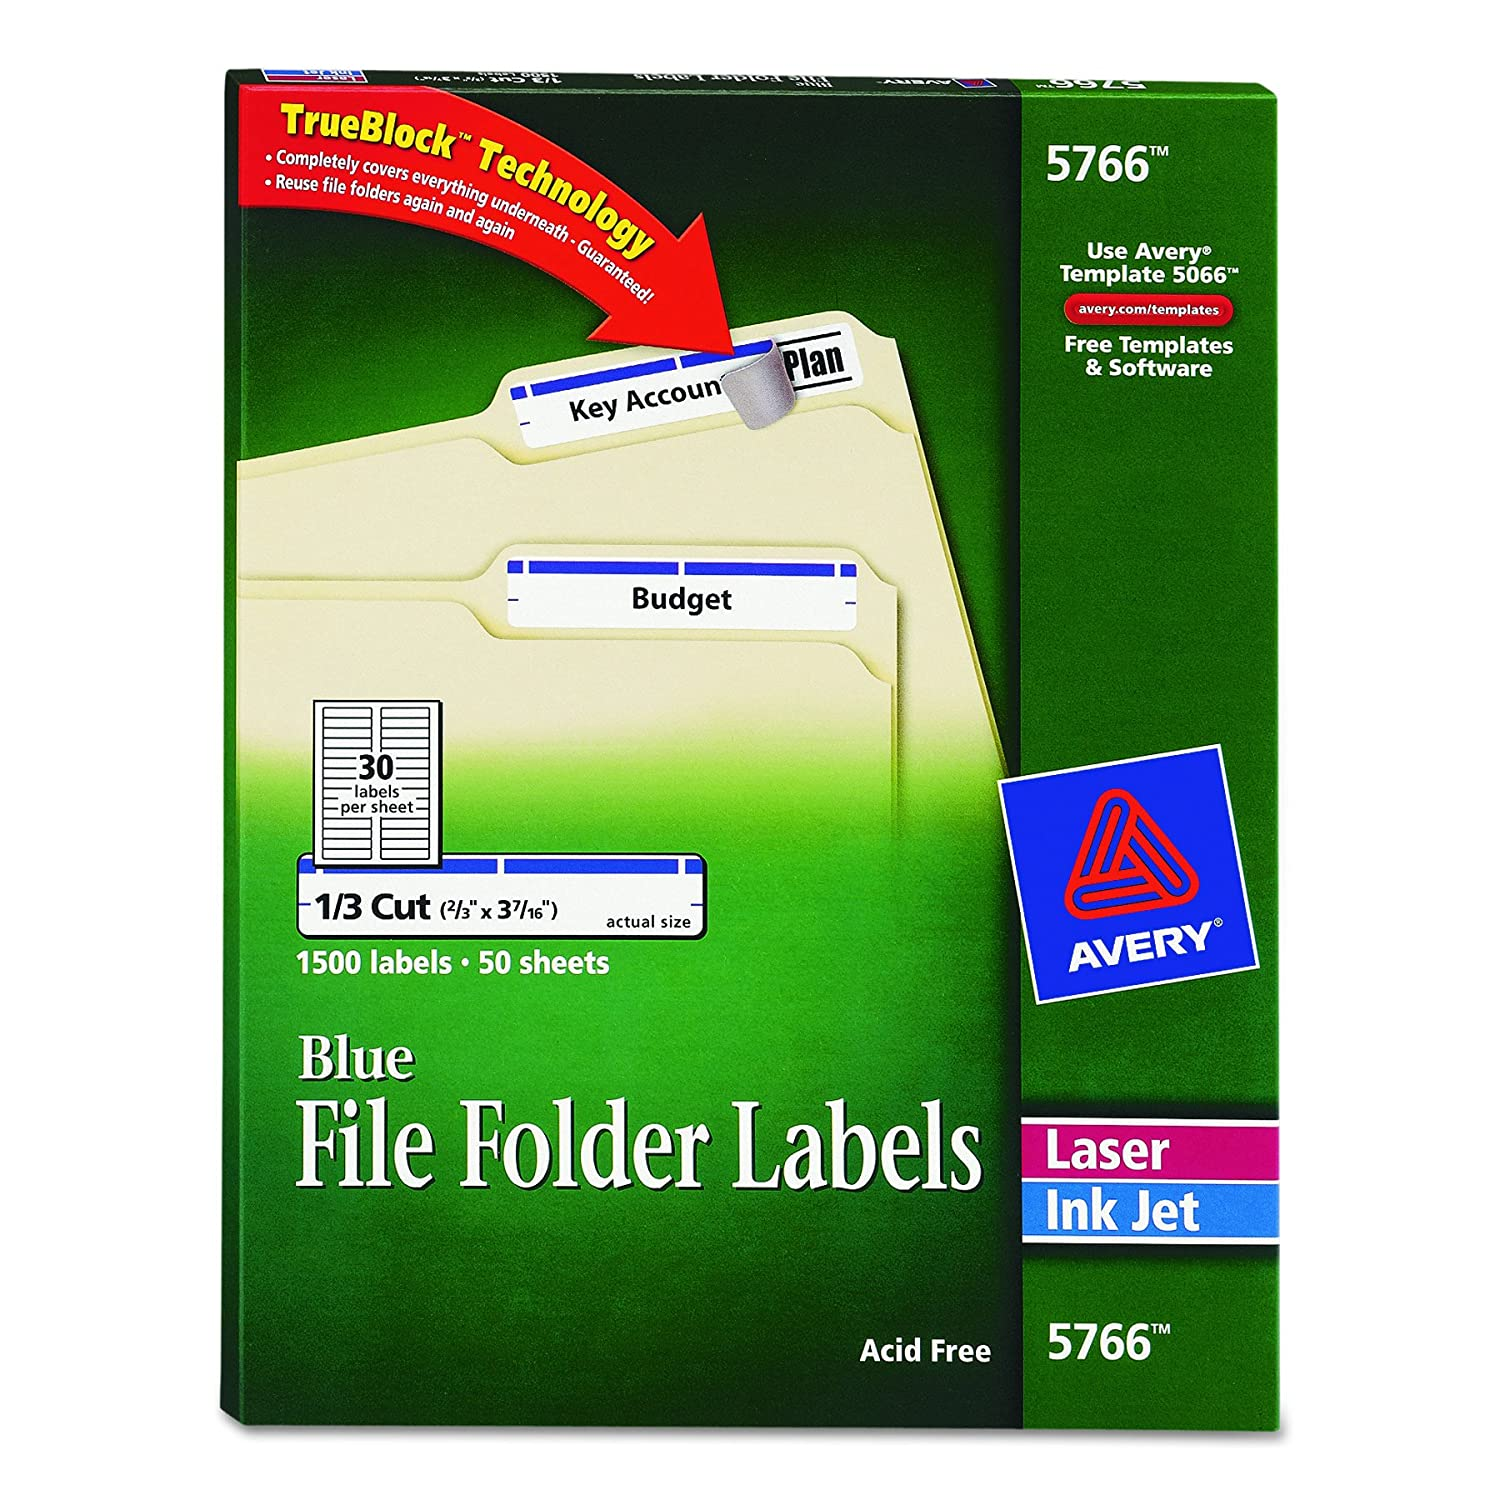 Amazon avery blue file folder labels for laser and inkjet amazon avery blue file folder labels for laser and inkjet printers with trueblock technology 23 inches x 3 716 inches box of 1500 5766 office saigontimesfo